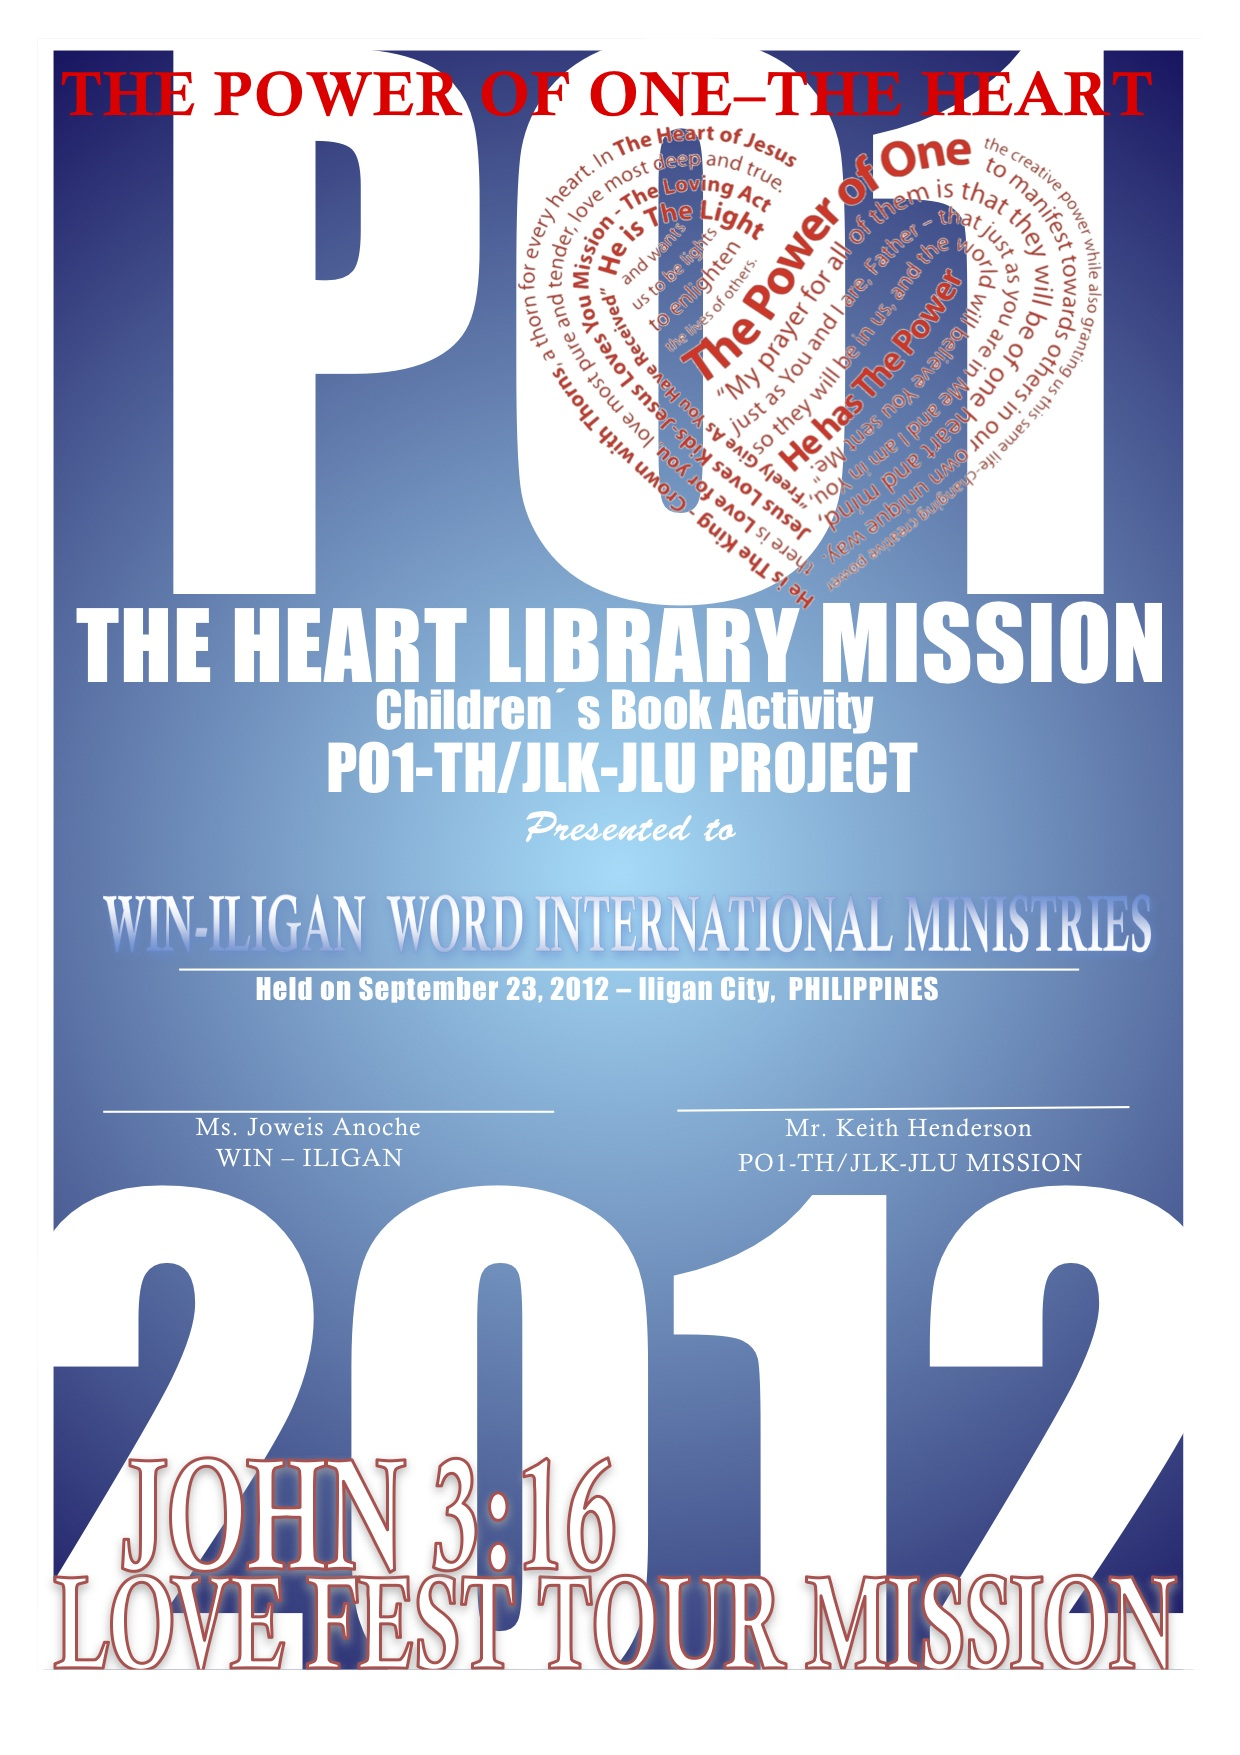 sisJoy ILIGAN-PO1-The Heart Library01.jpg